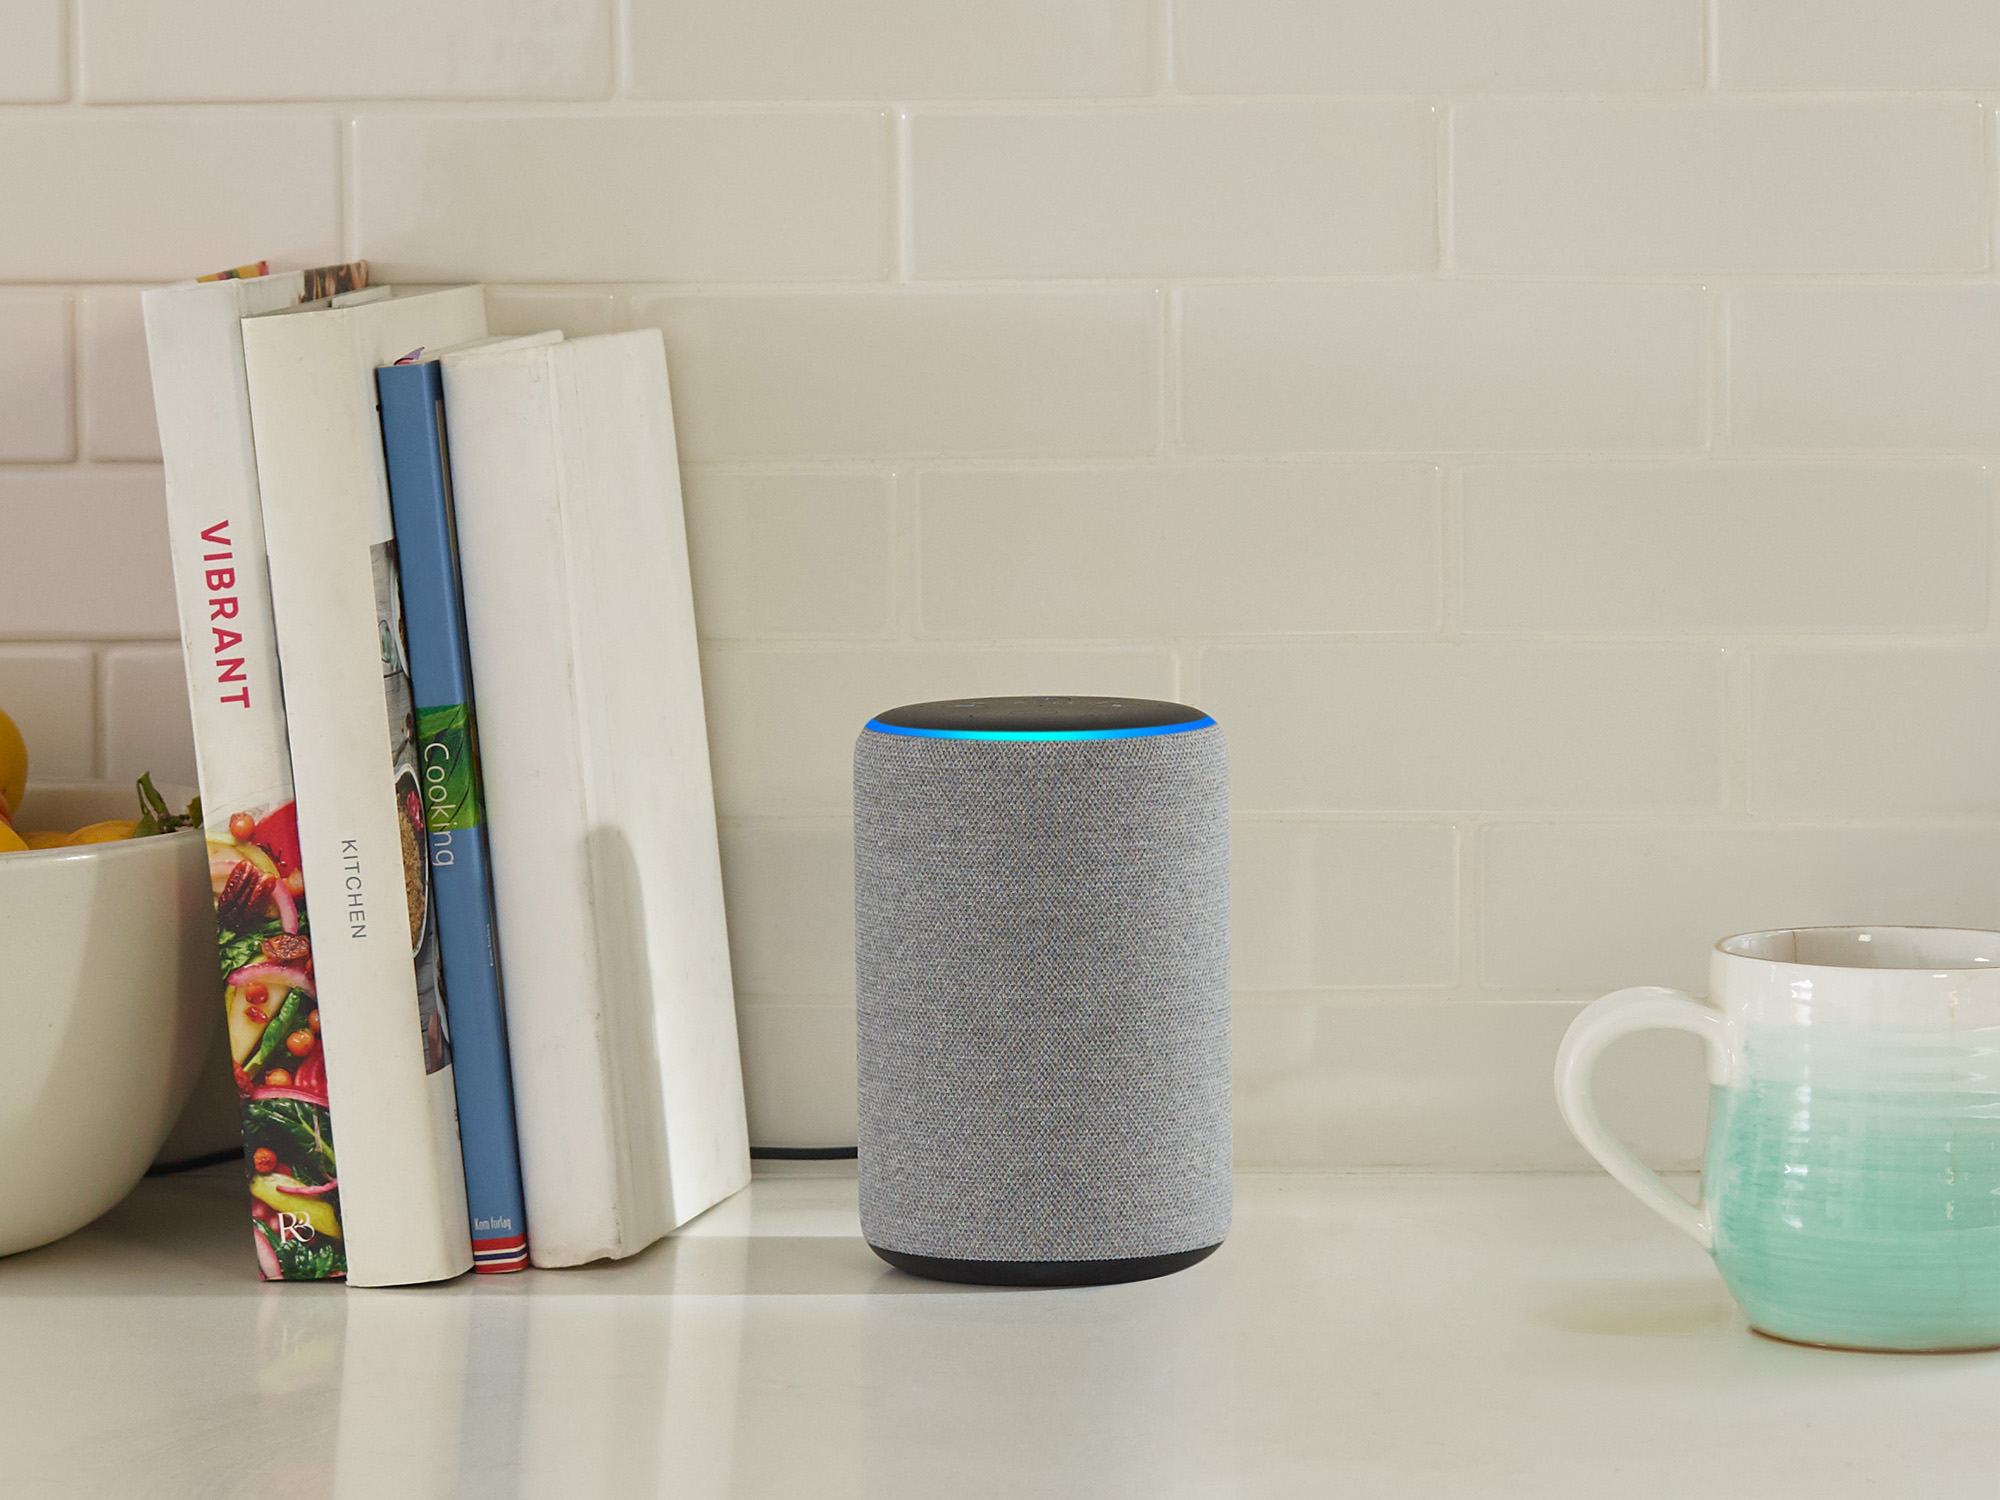 Alexa Political Contributions enables Amazon Echo (and other Alexa-compatible device) owners to donate to any 2020 U.S. presidential candidate using Amazon Pay.